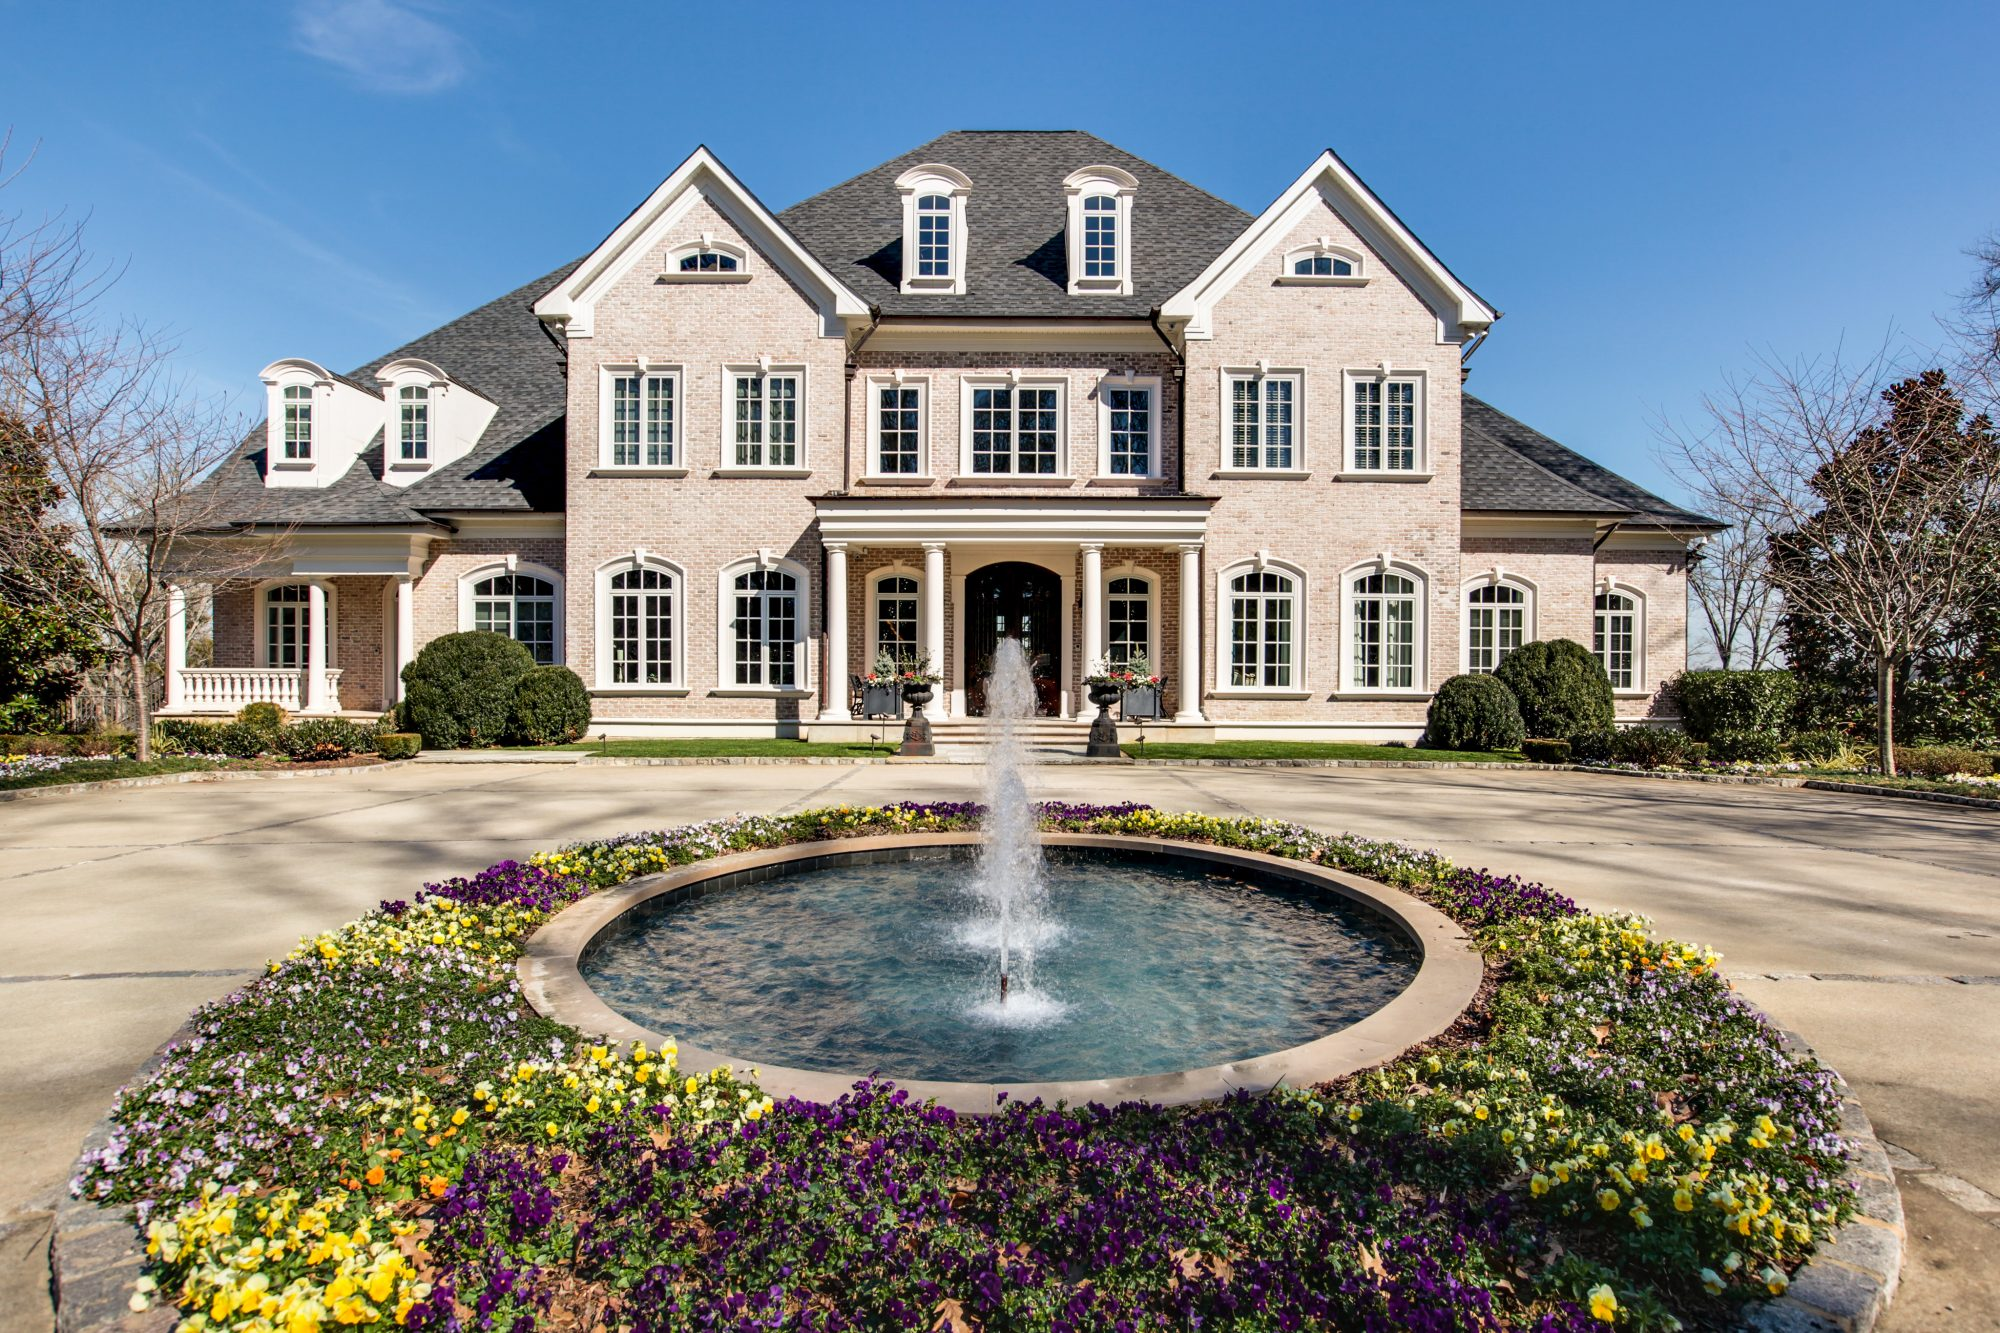 Kelly Clarkson Home for Sale